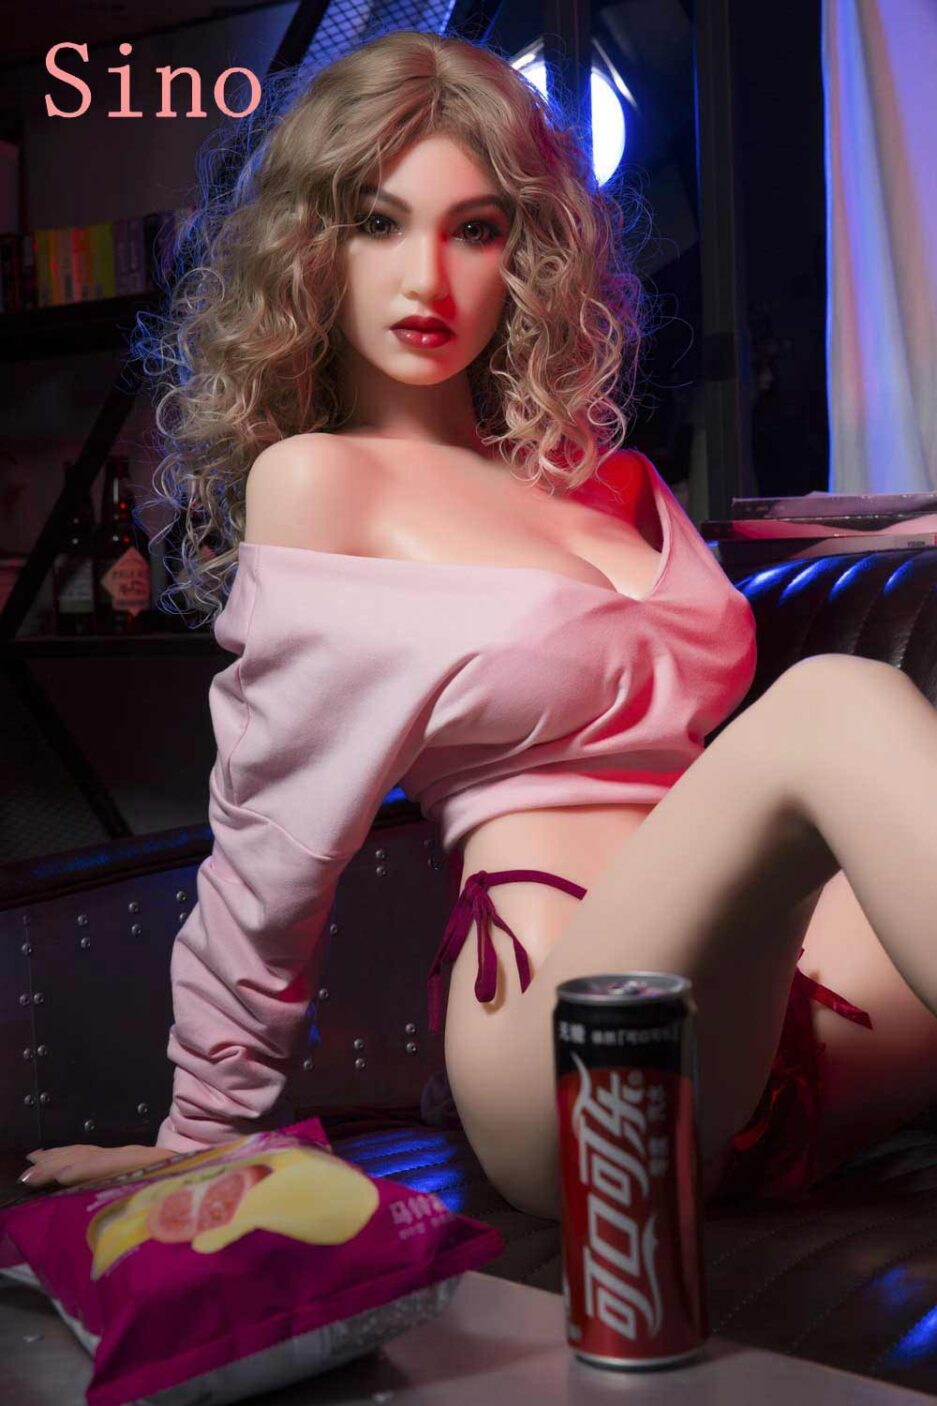 Silicone sex doll with Coke next to it